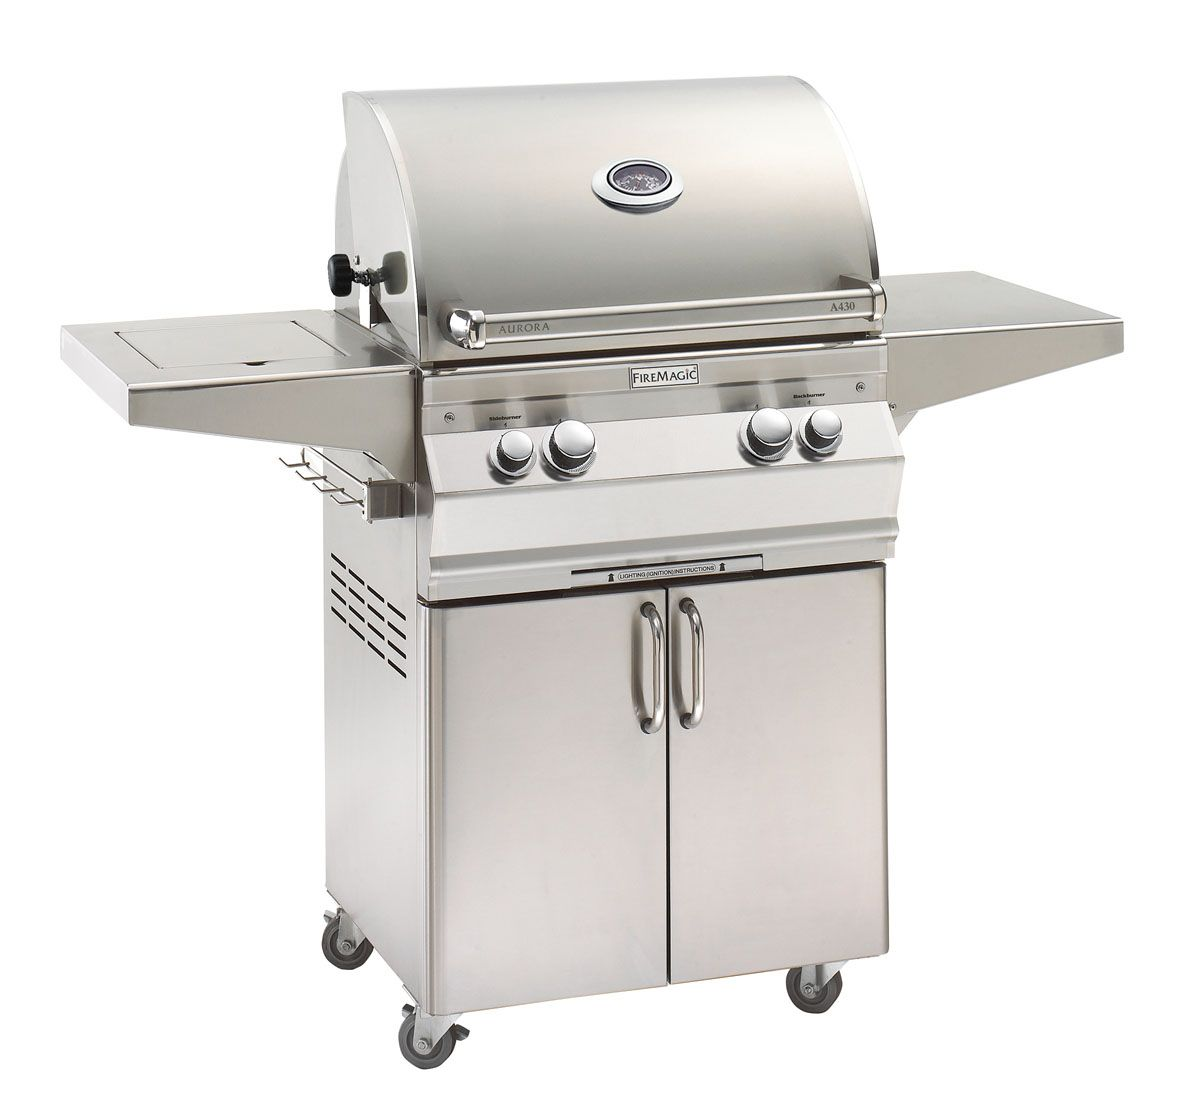 """Fire Magic A430S-8EAP-62 Aurora A430S 24"""" Freestanding Propane Gas Grill With Side Burner  Analog Thermometer"""